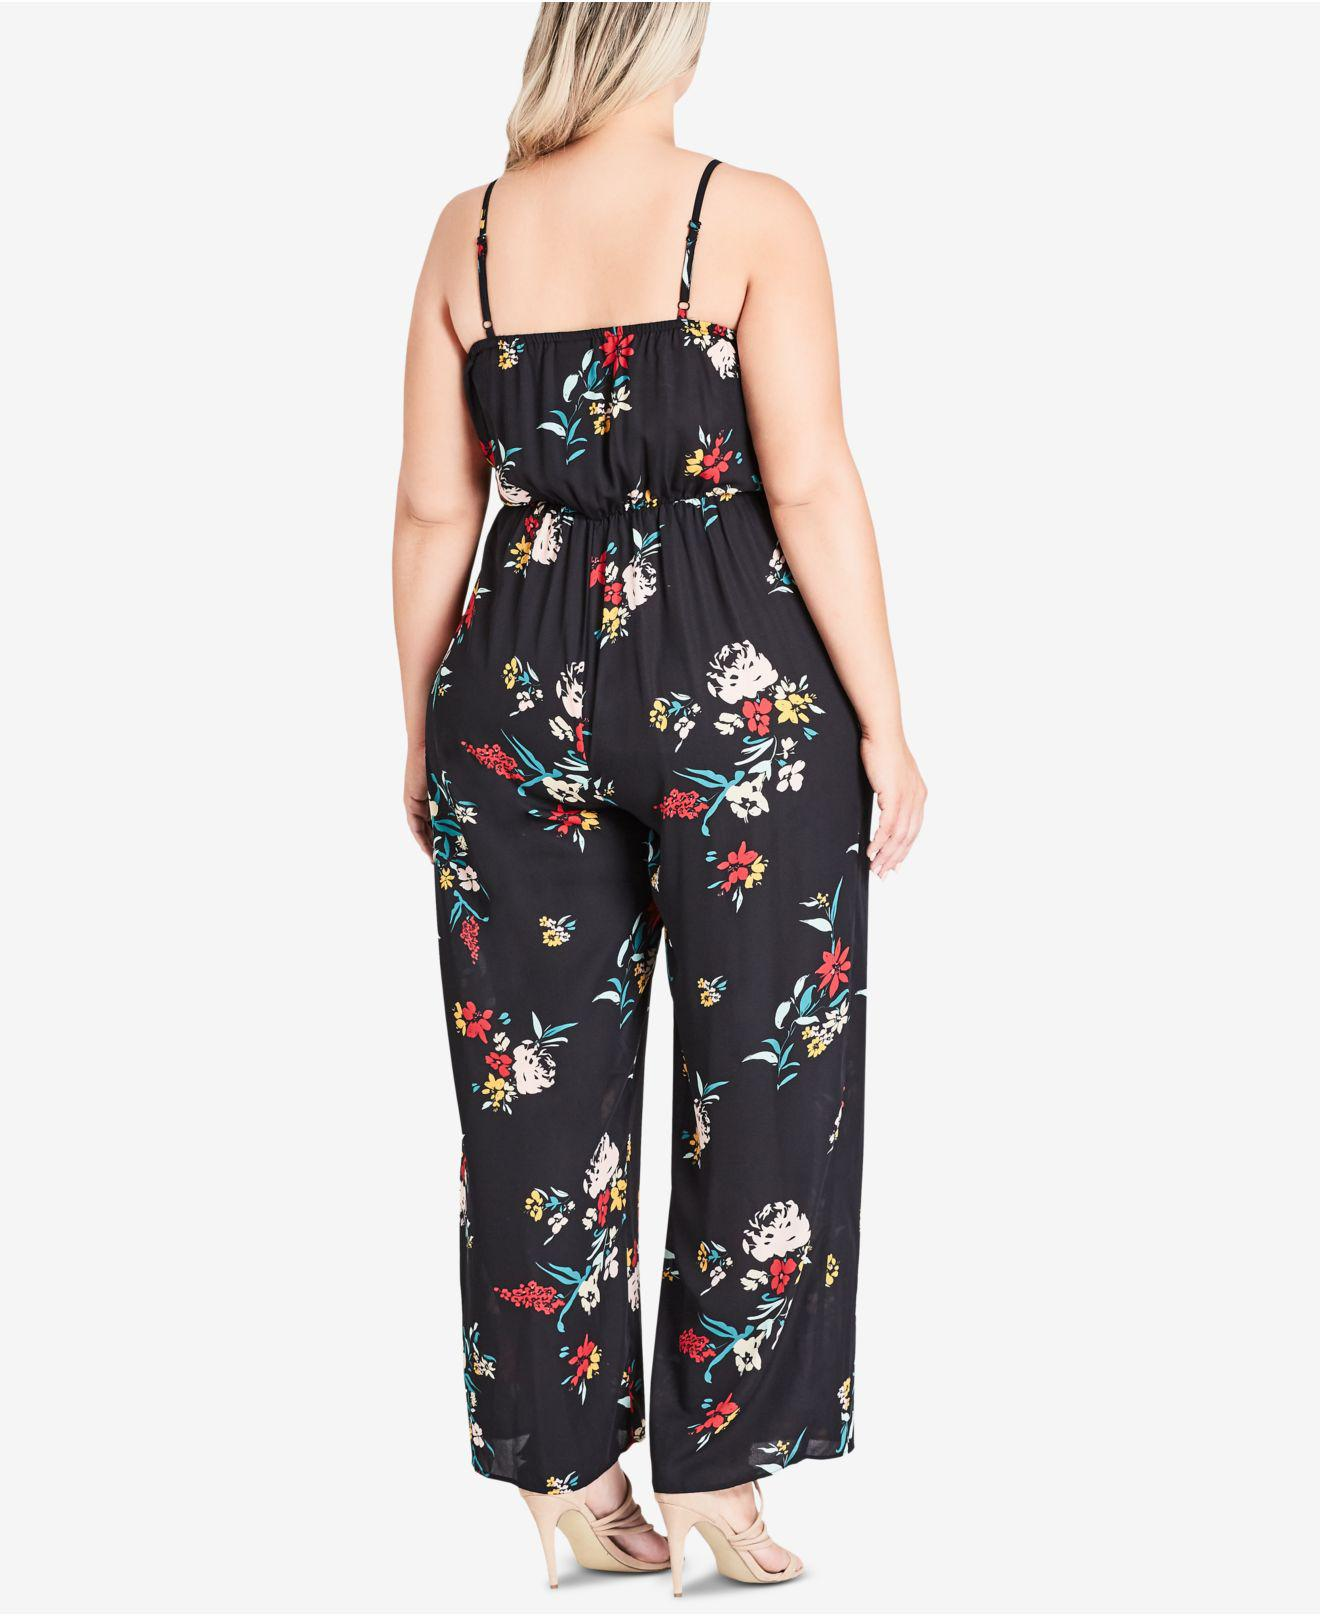 9a45bd25fd4 Lyst - City Chic Trendy Plus Size Flowerette Printed Jumpsuit in Black -  Save 50%